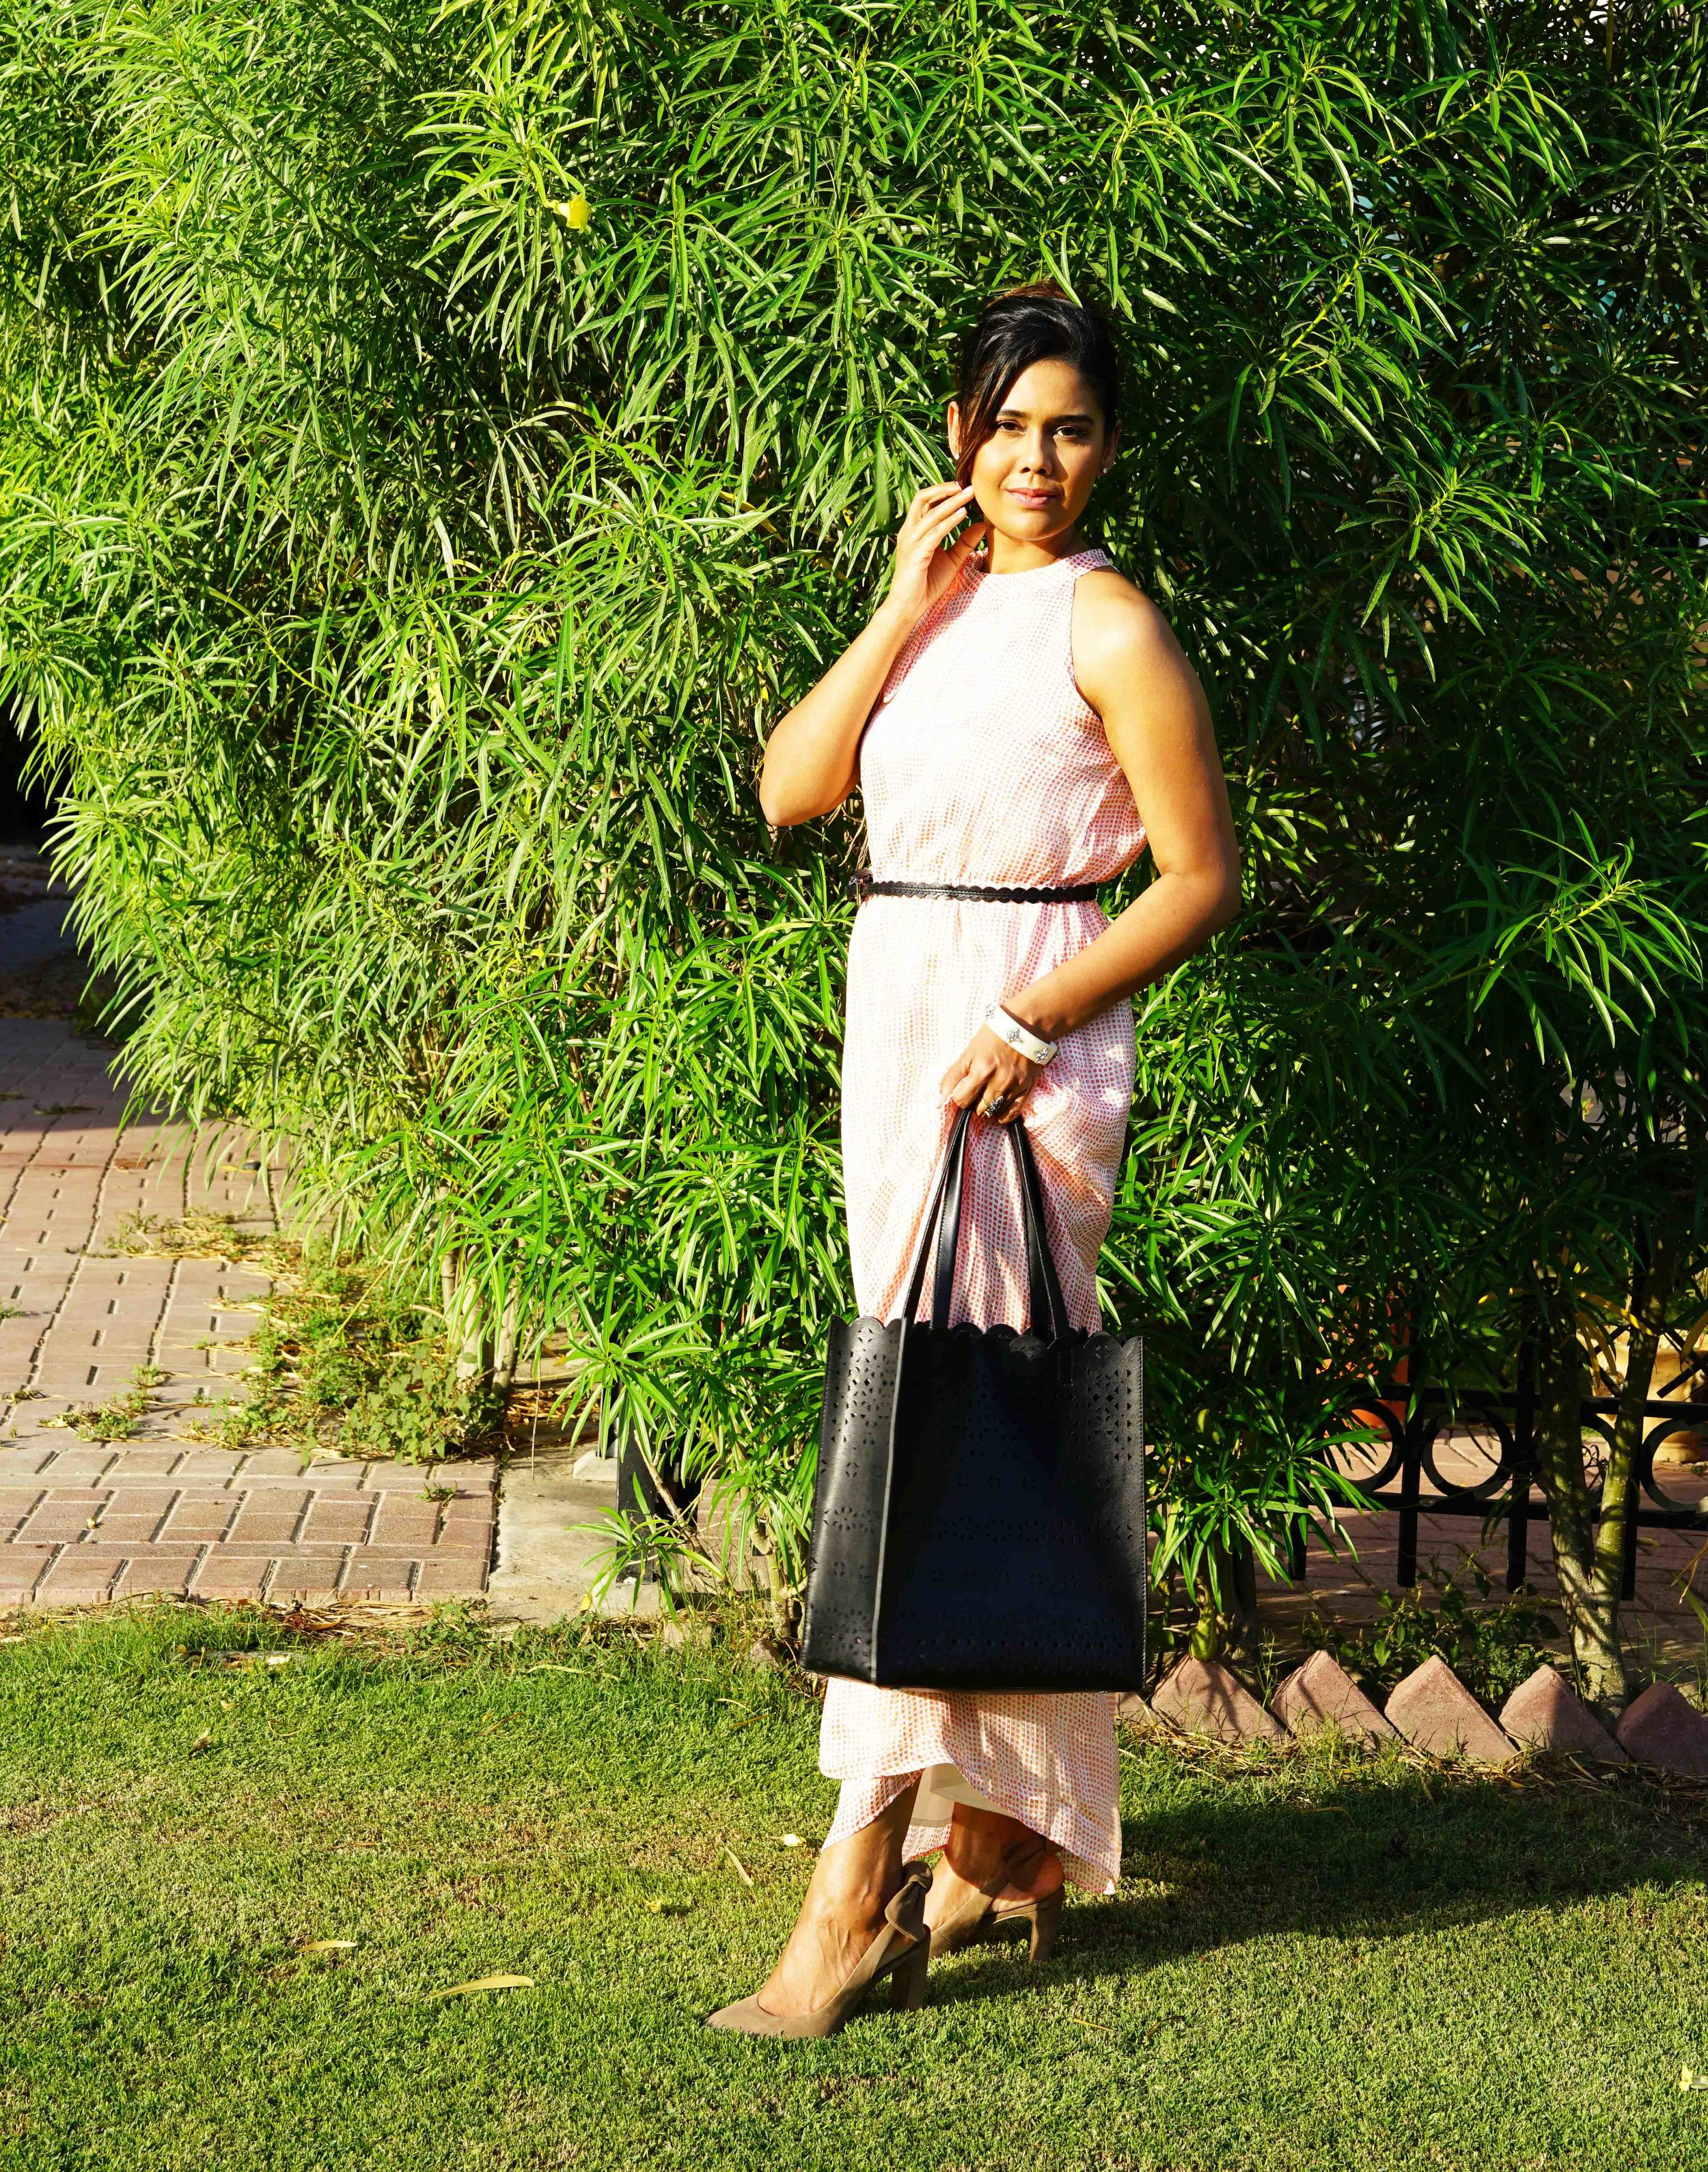 Inspired by visuals of Mumbai, a rust printed sari-silhoutte maxi dress paired WITH SUEDE HEELS, SIMPLE LEATHER BELT AND AN ELEGANT structured TOTE.. Throw in Some ethnic jewelery to break the formal code.